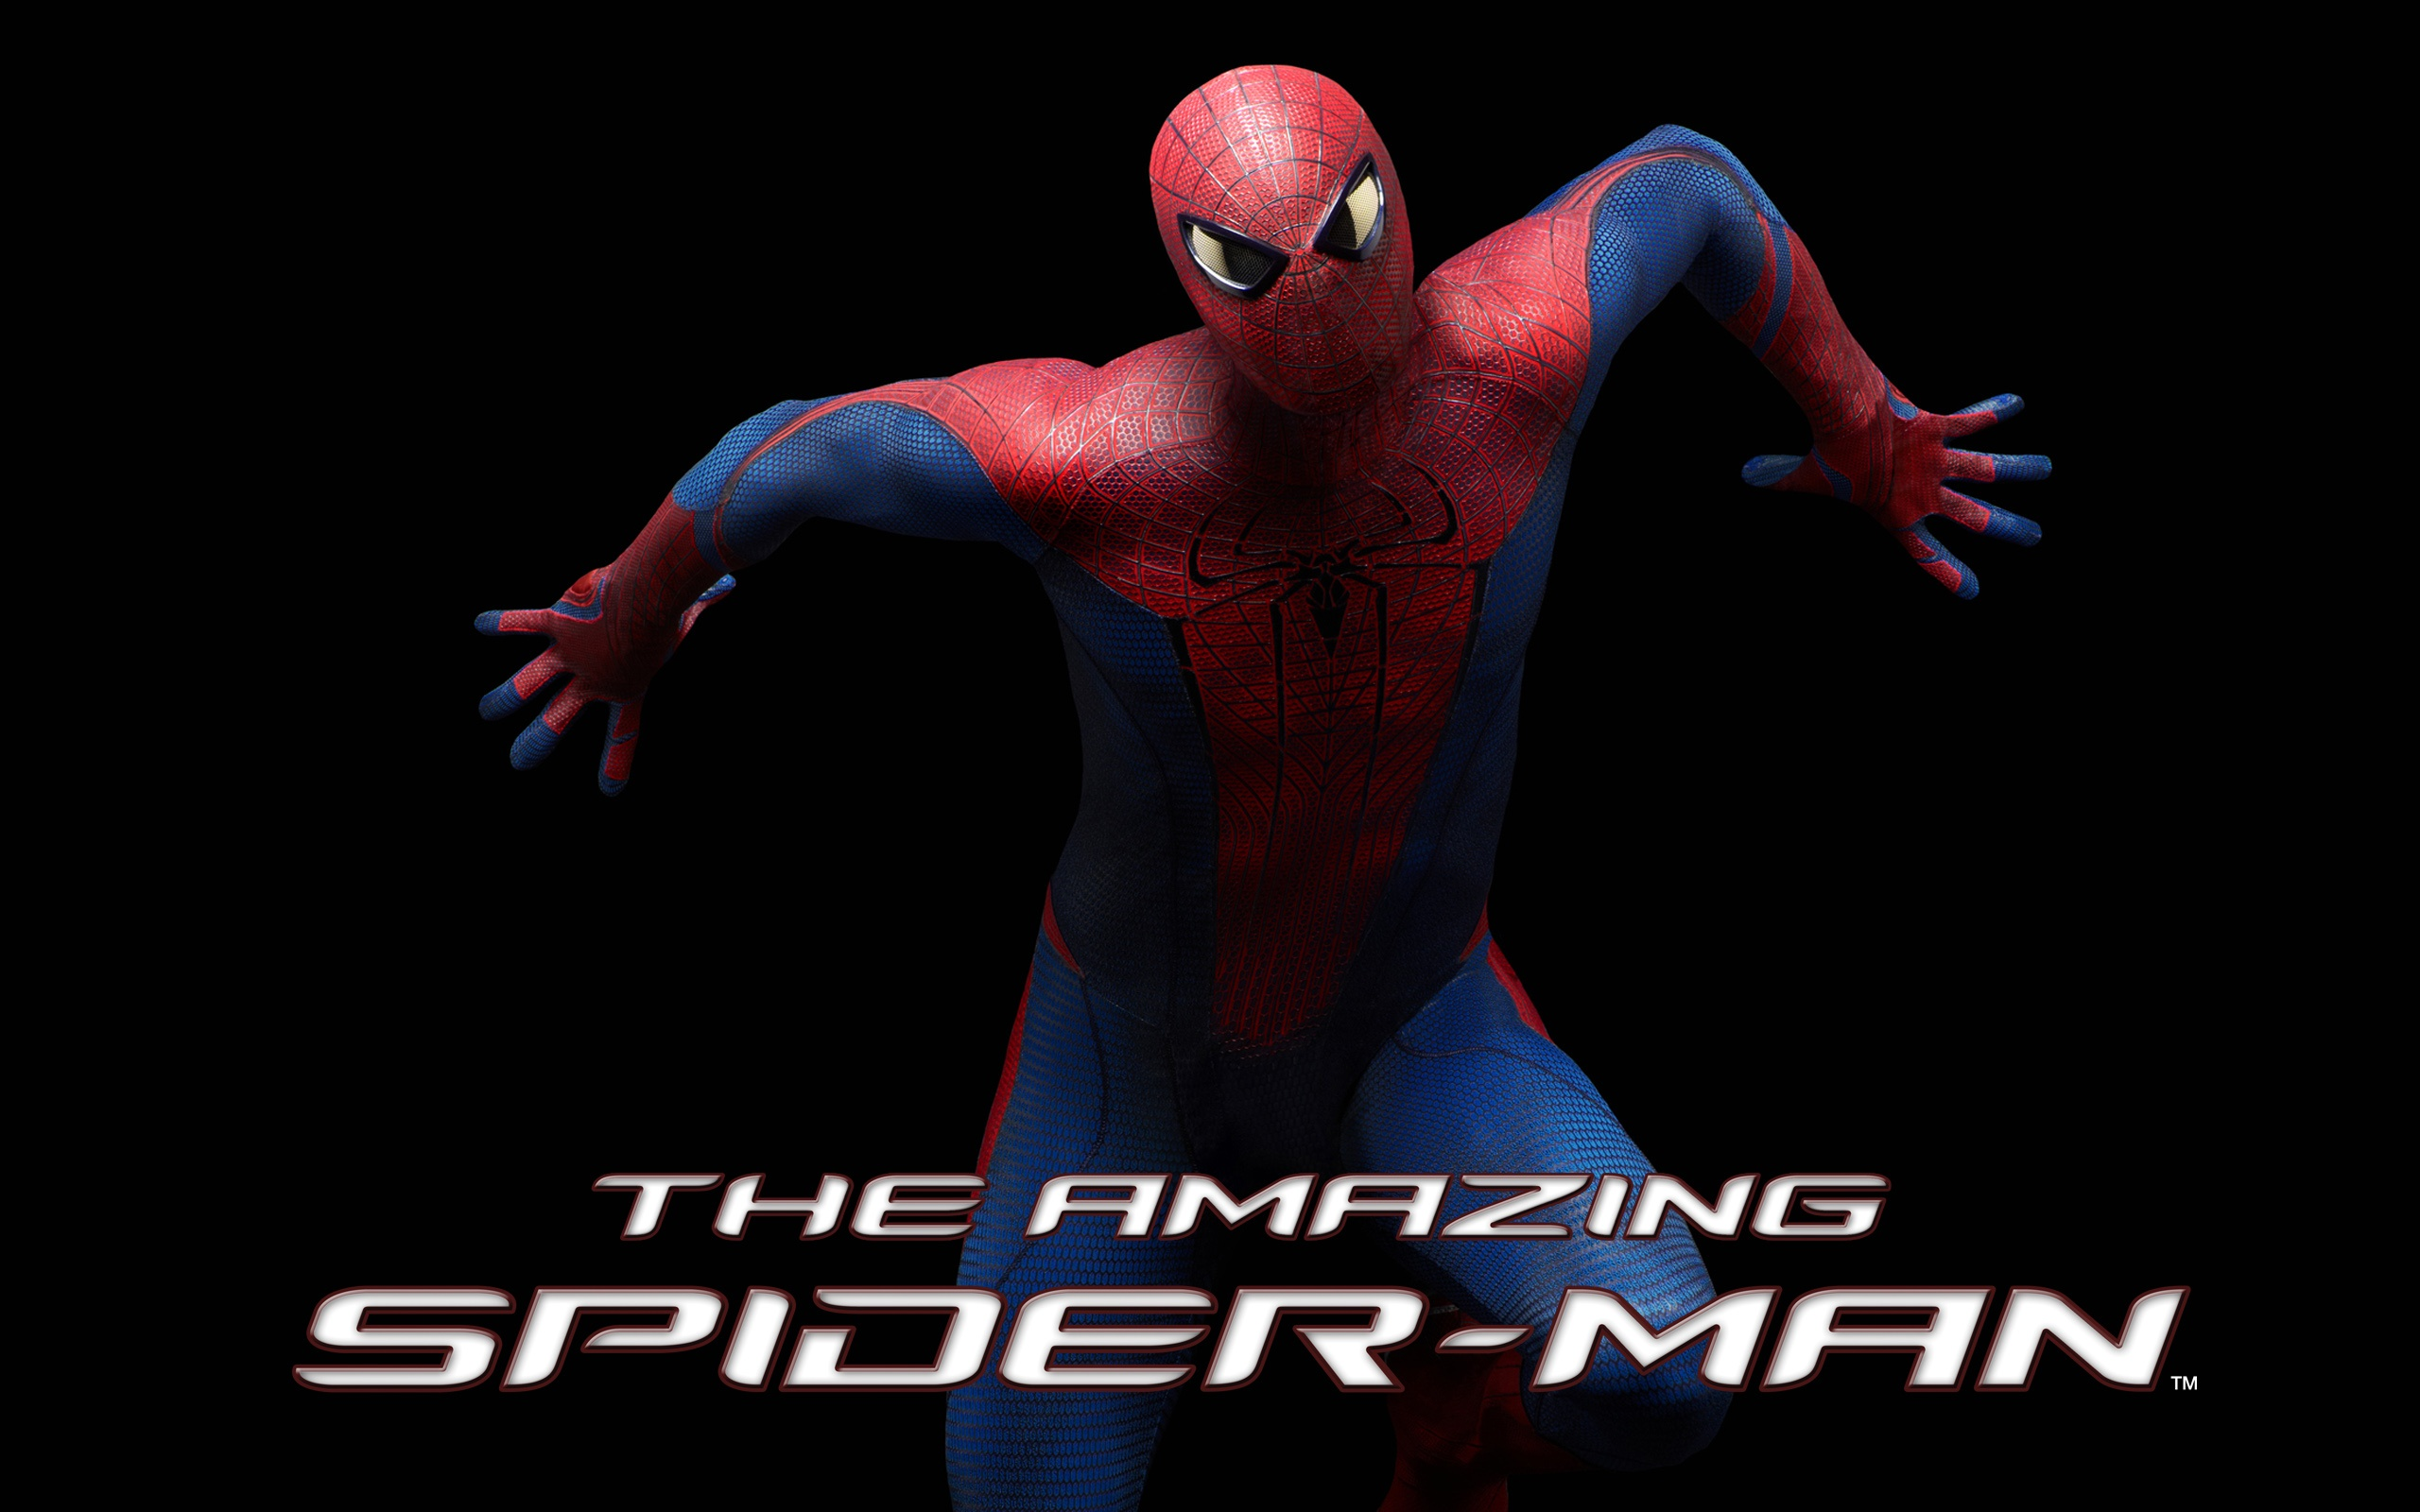 The amazing spider man 2 poster download full movie | desktop.